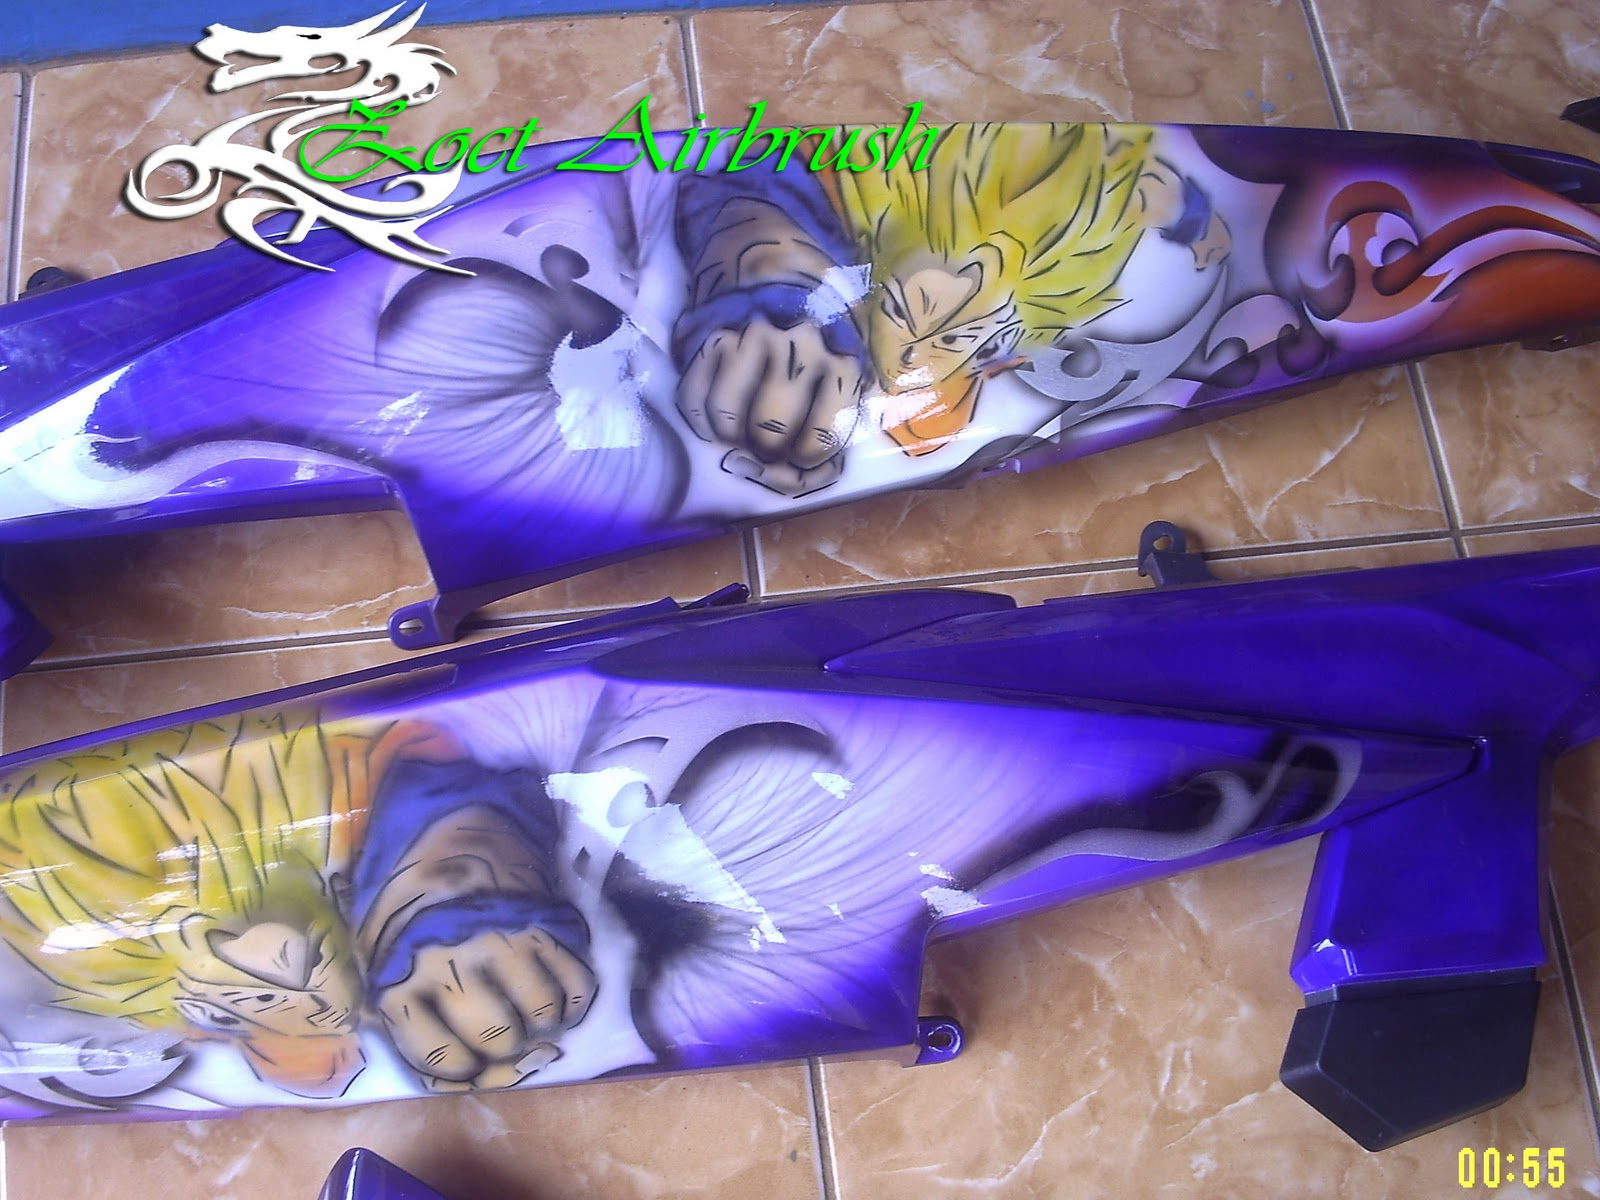 Modifikasi Jupiter MX 2011 Airbrush Dragon Ballz title=